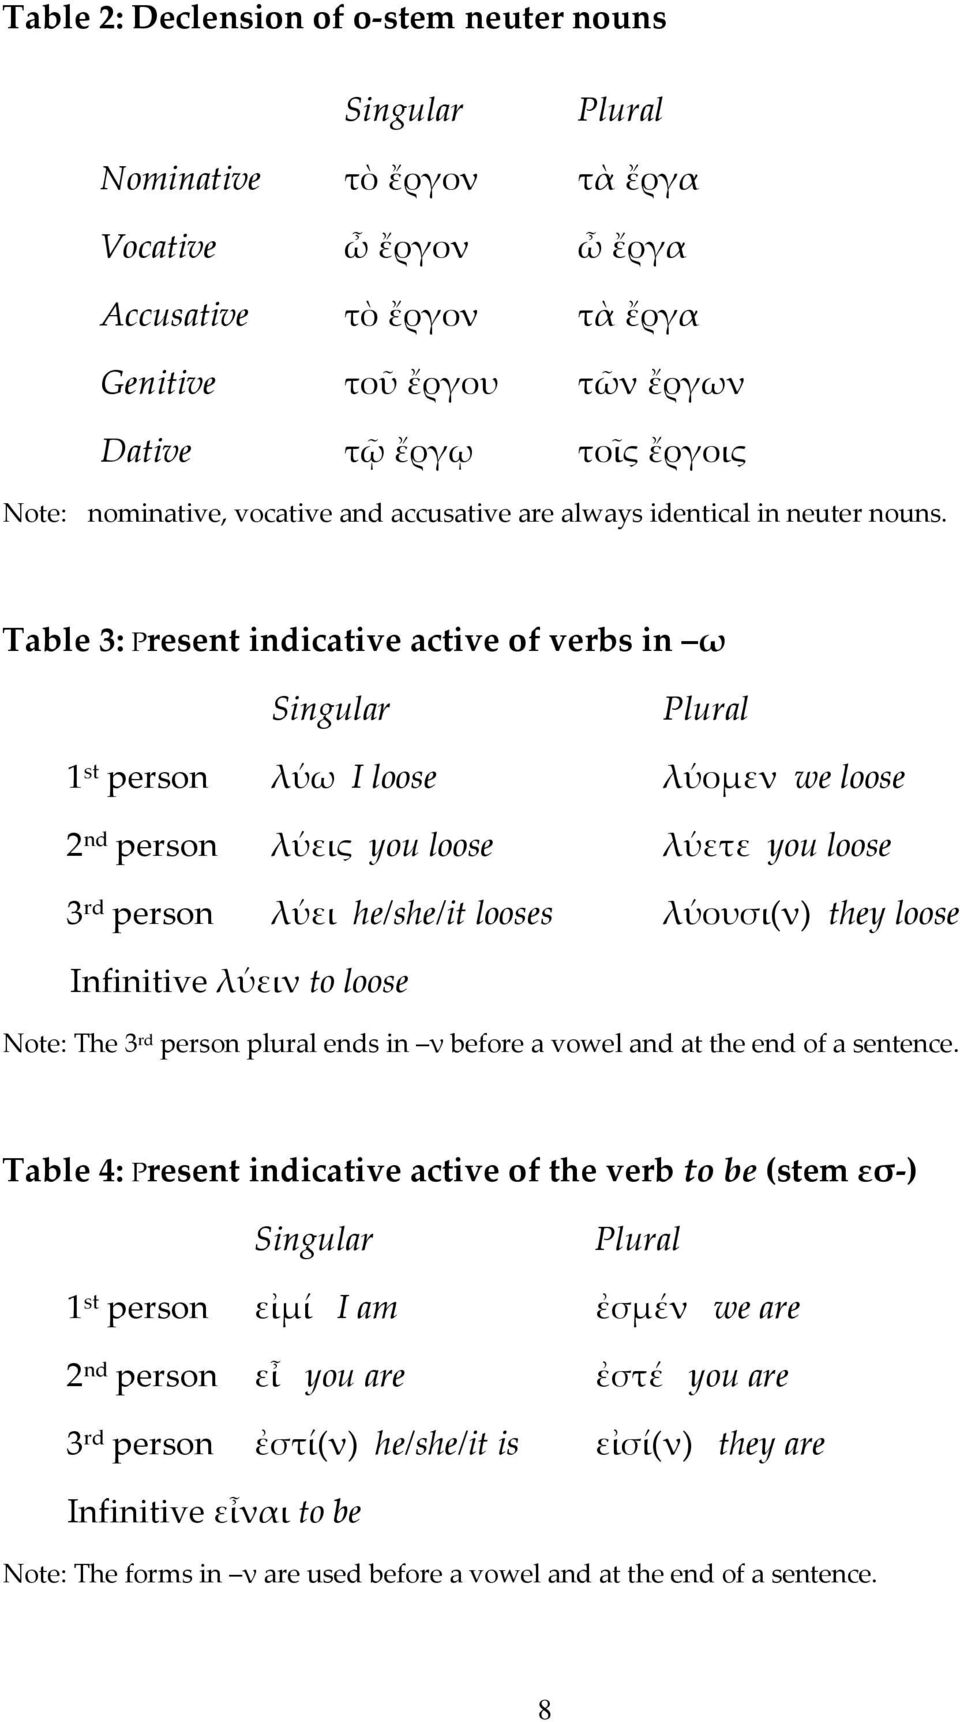 Table 3: Present indicative active of verbs in ω Singular Plural 1 st person λύω I loose λύομεν we loose 2 nd person λύεις you loose λύετε you loose 3 rd person λύει he/she/it looses λύουσι(ν) they